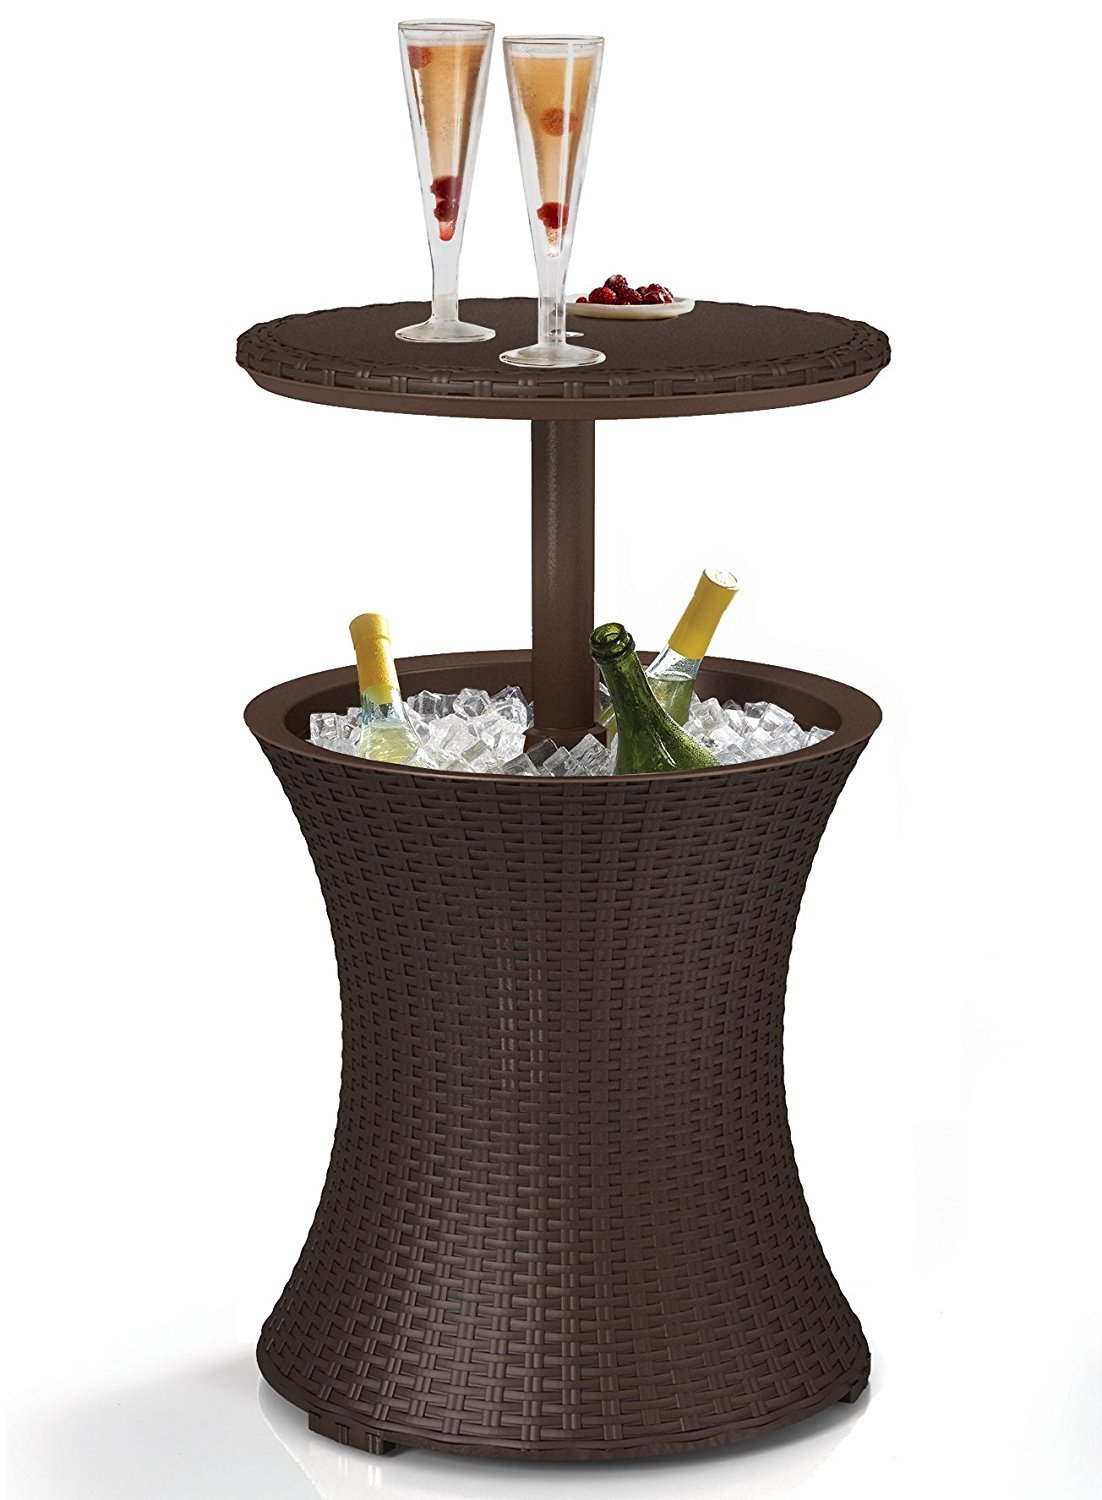 Keter Cool Bar Rattan Style Outdoor